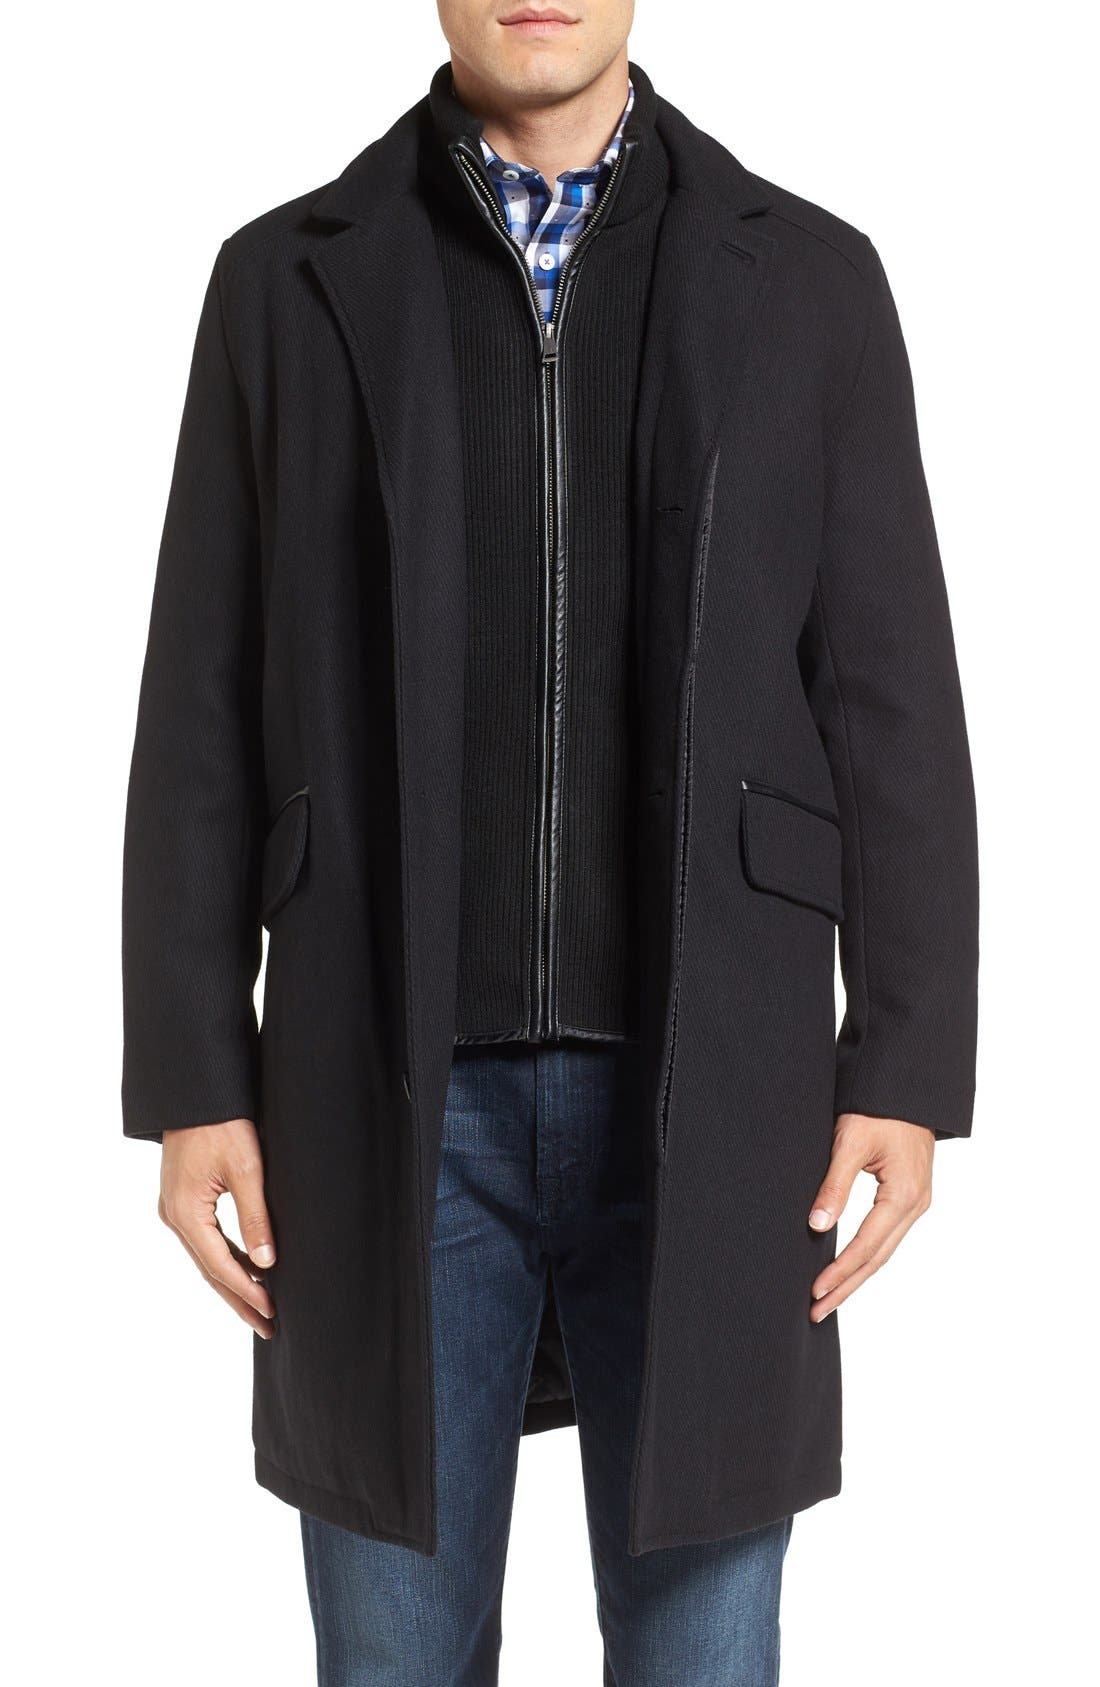 Wool Blend Overcoat with Knit Bib Inset,                             Main thumbnail 1, color,                             Black